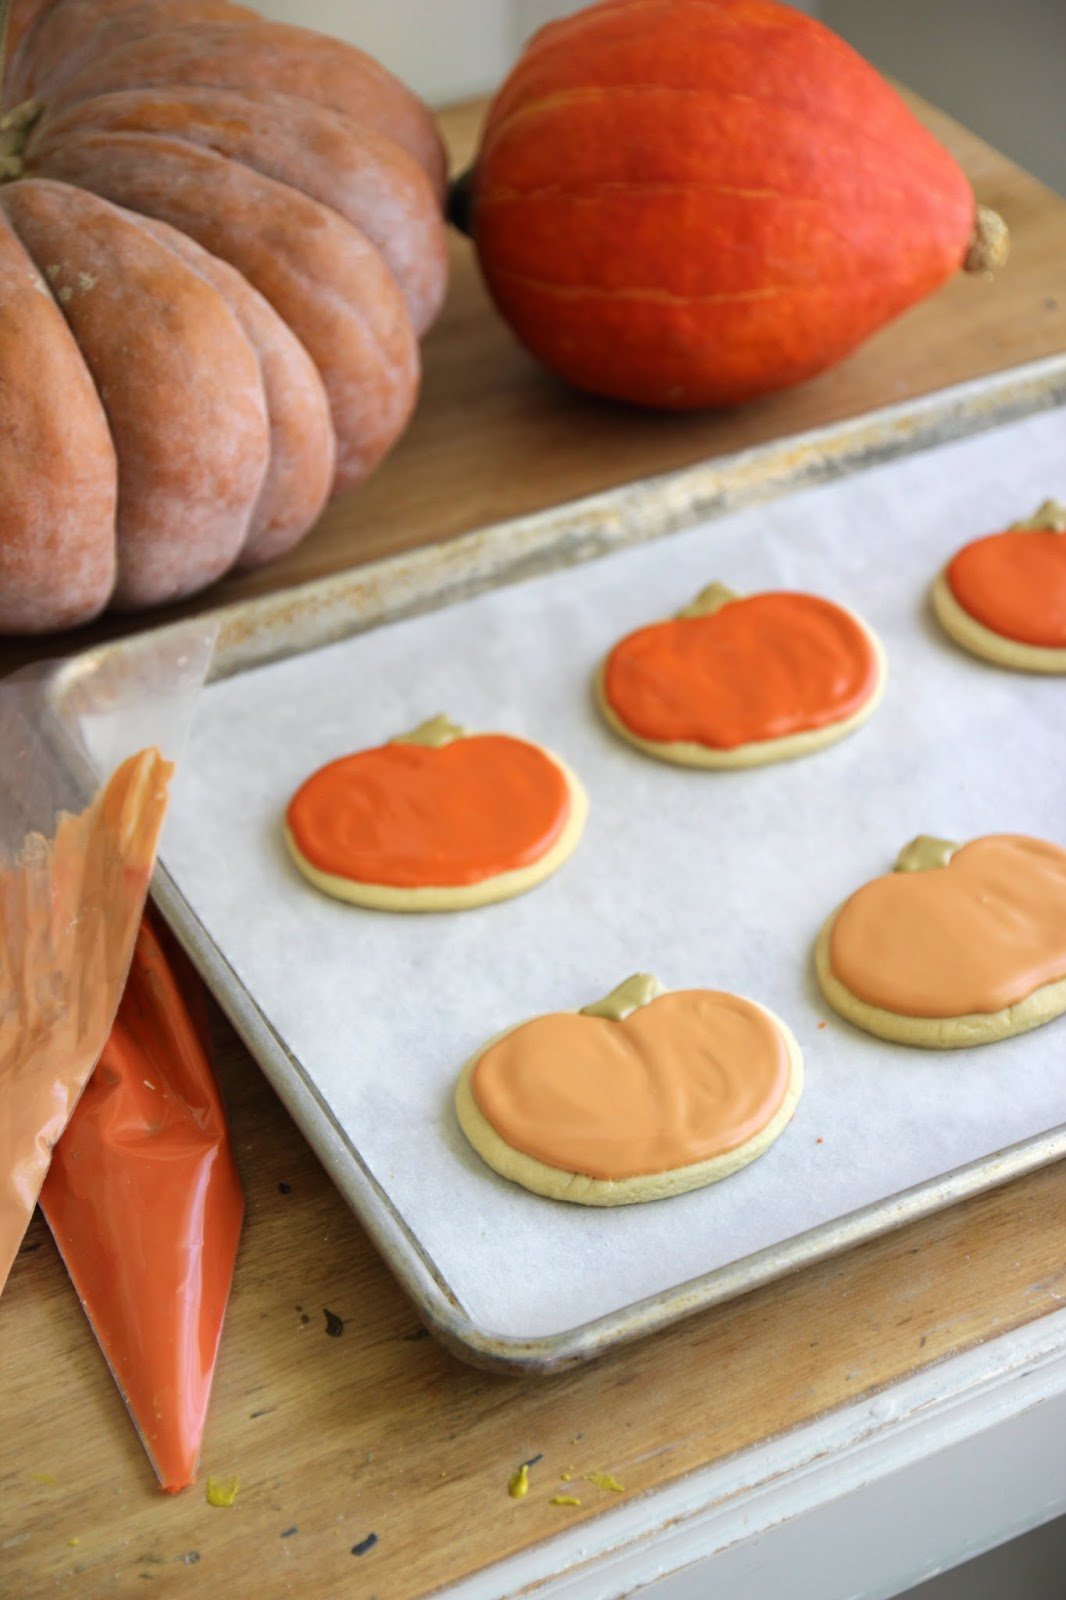 Halloween Themed Baby Shower Cookies.Jenny Steffens Hobick Heirloom Pumpkin Acorn Sugar Cookies